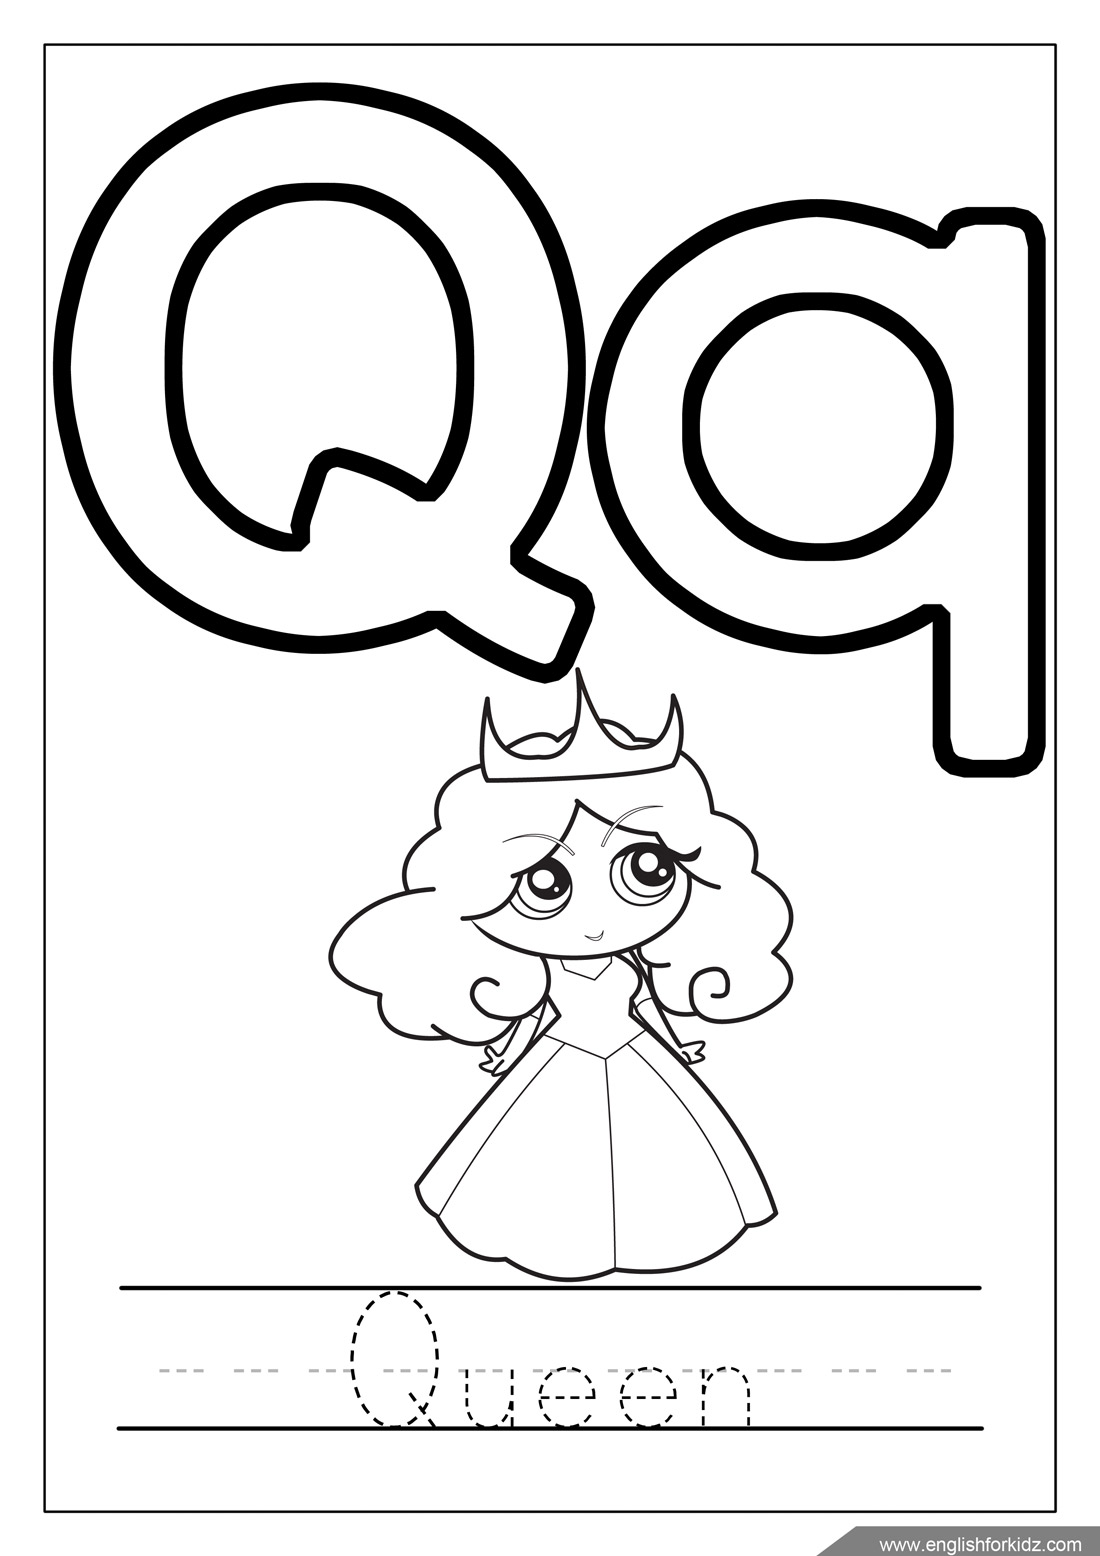 q is for queen coloring page letter q coloring pages at getcoloringscom free queen coloring is page for q